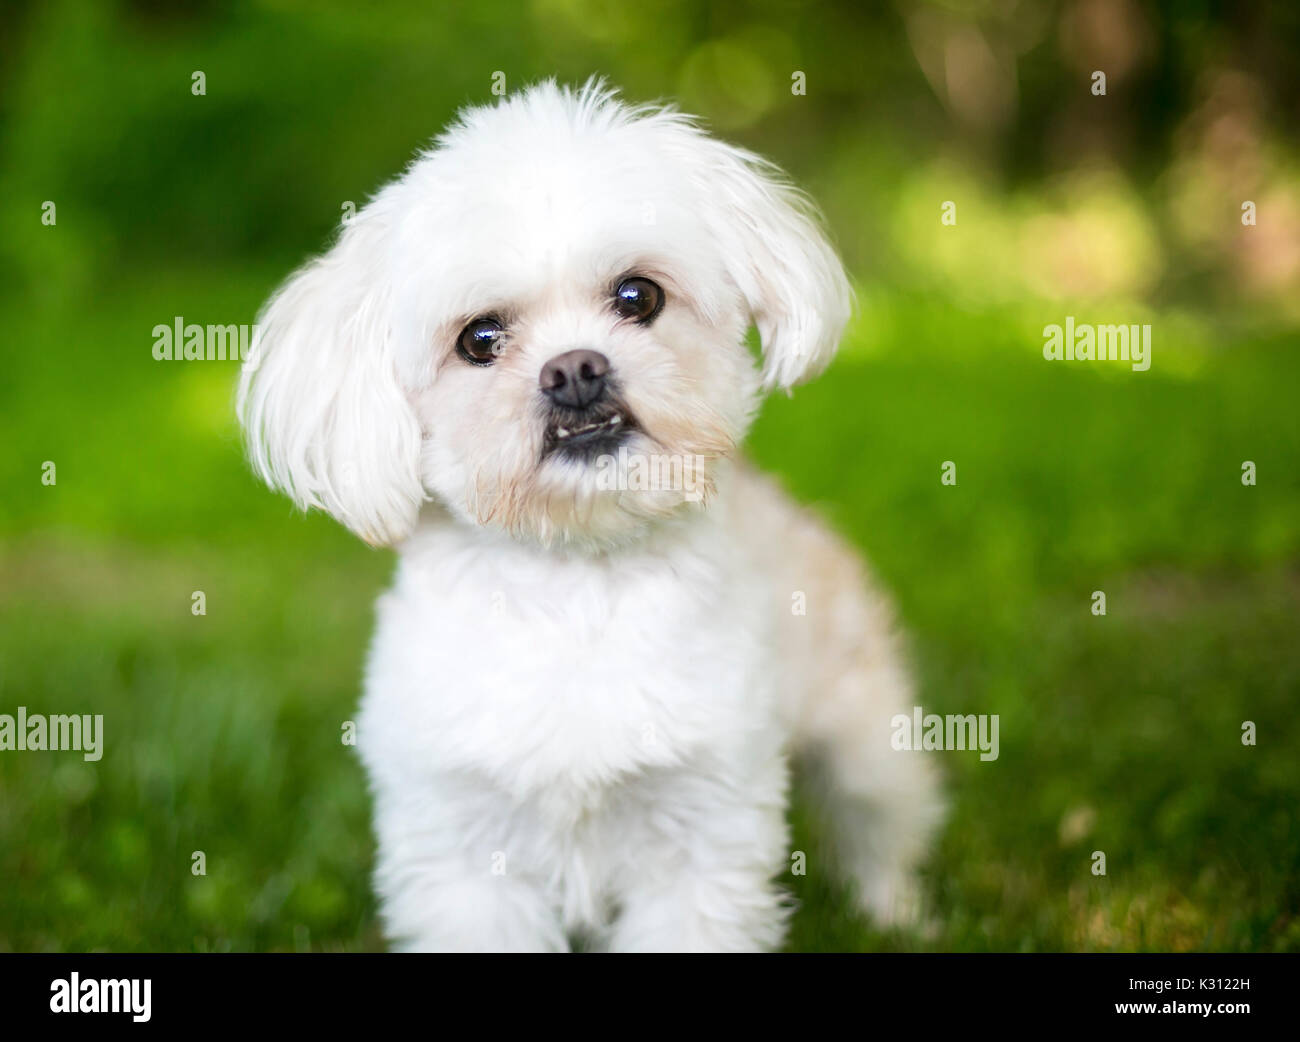 A small fluffy white mixed breed dog outdoors - Stock Image